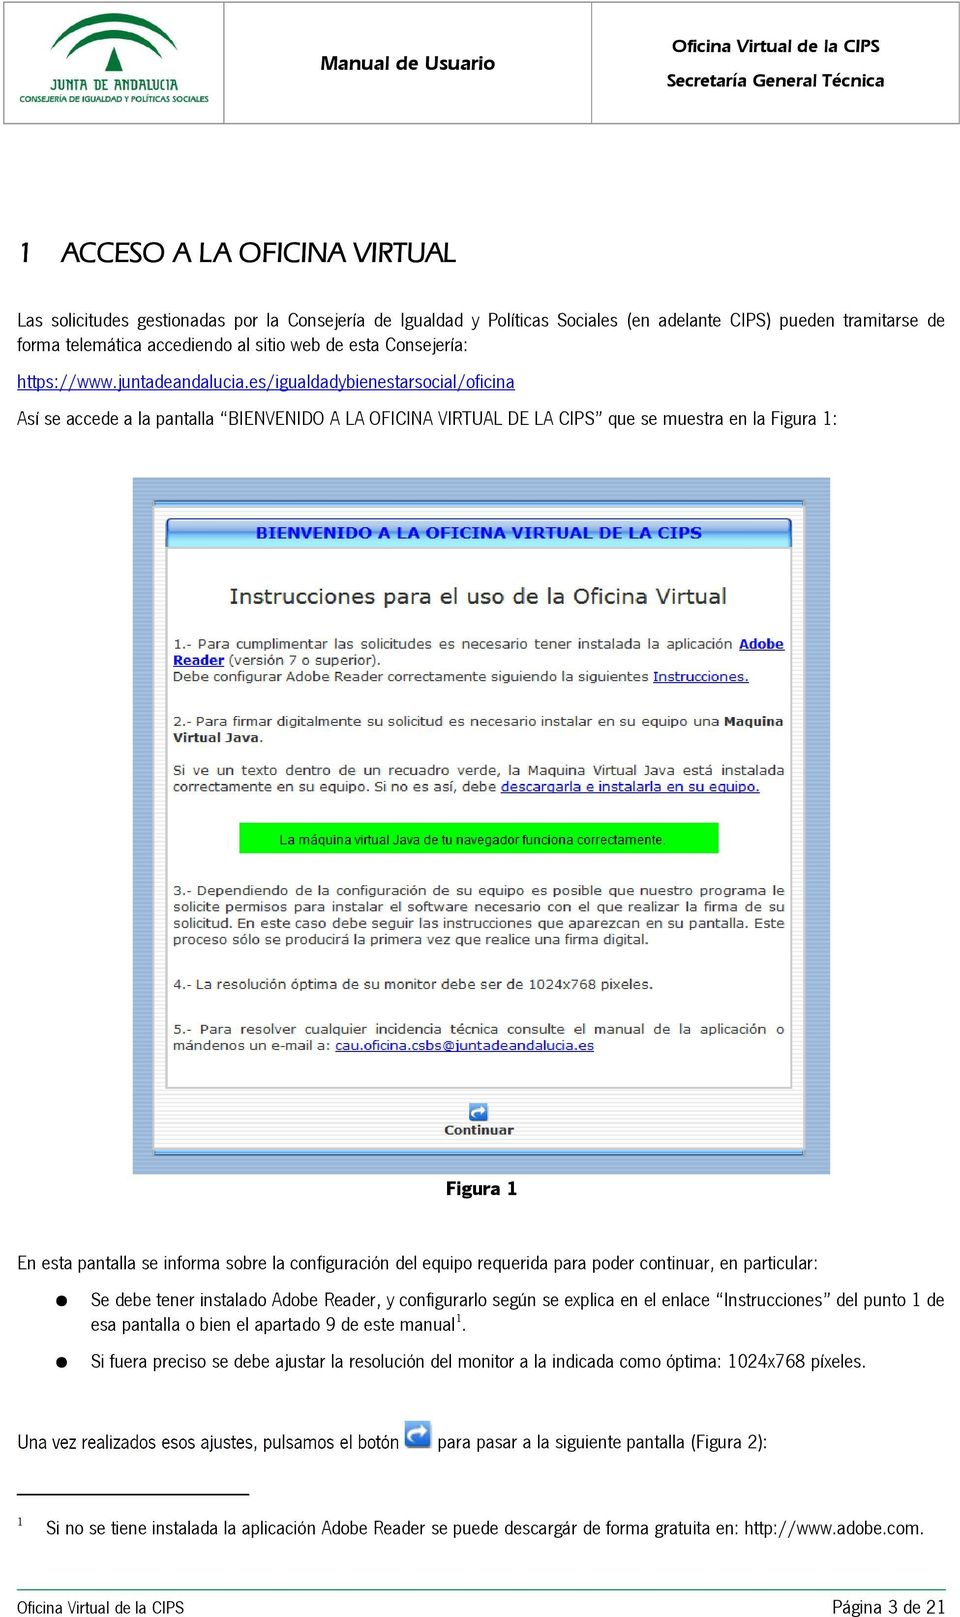 Oficina virtual de la cips pdf for Oficina virtual del